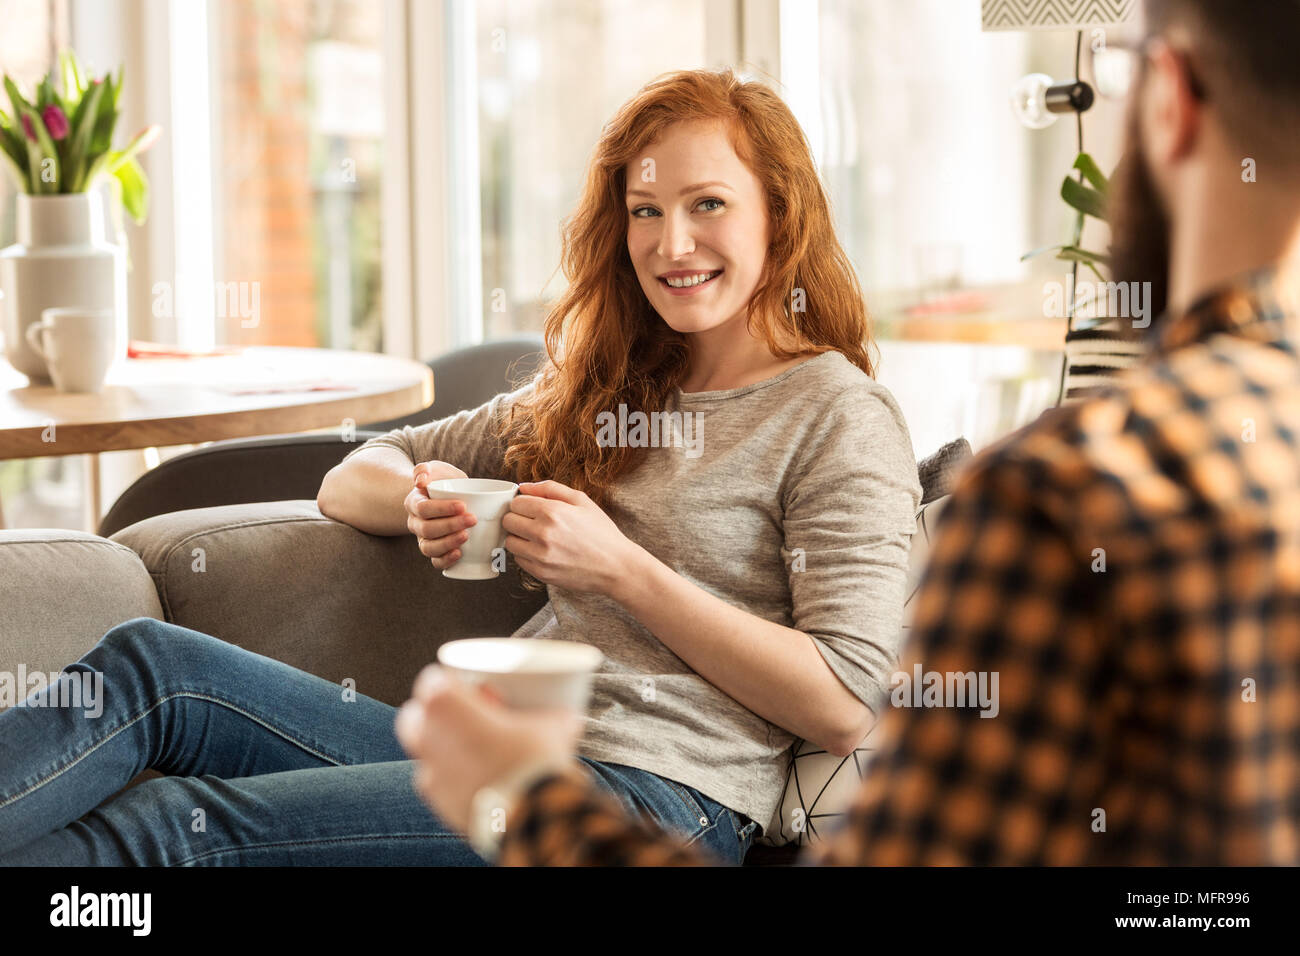 Smiling woman drinking tea and looking lovingly at her husband - Stock Image